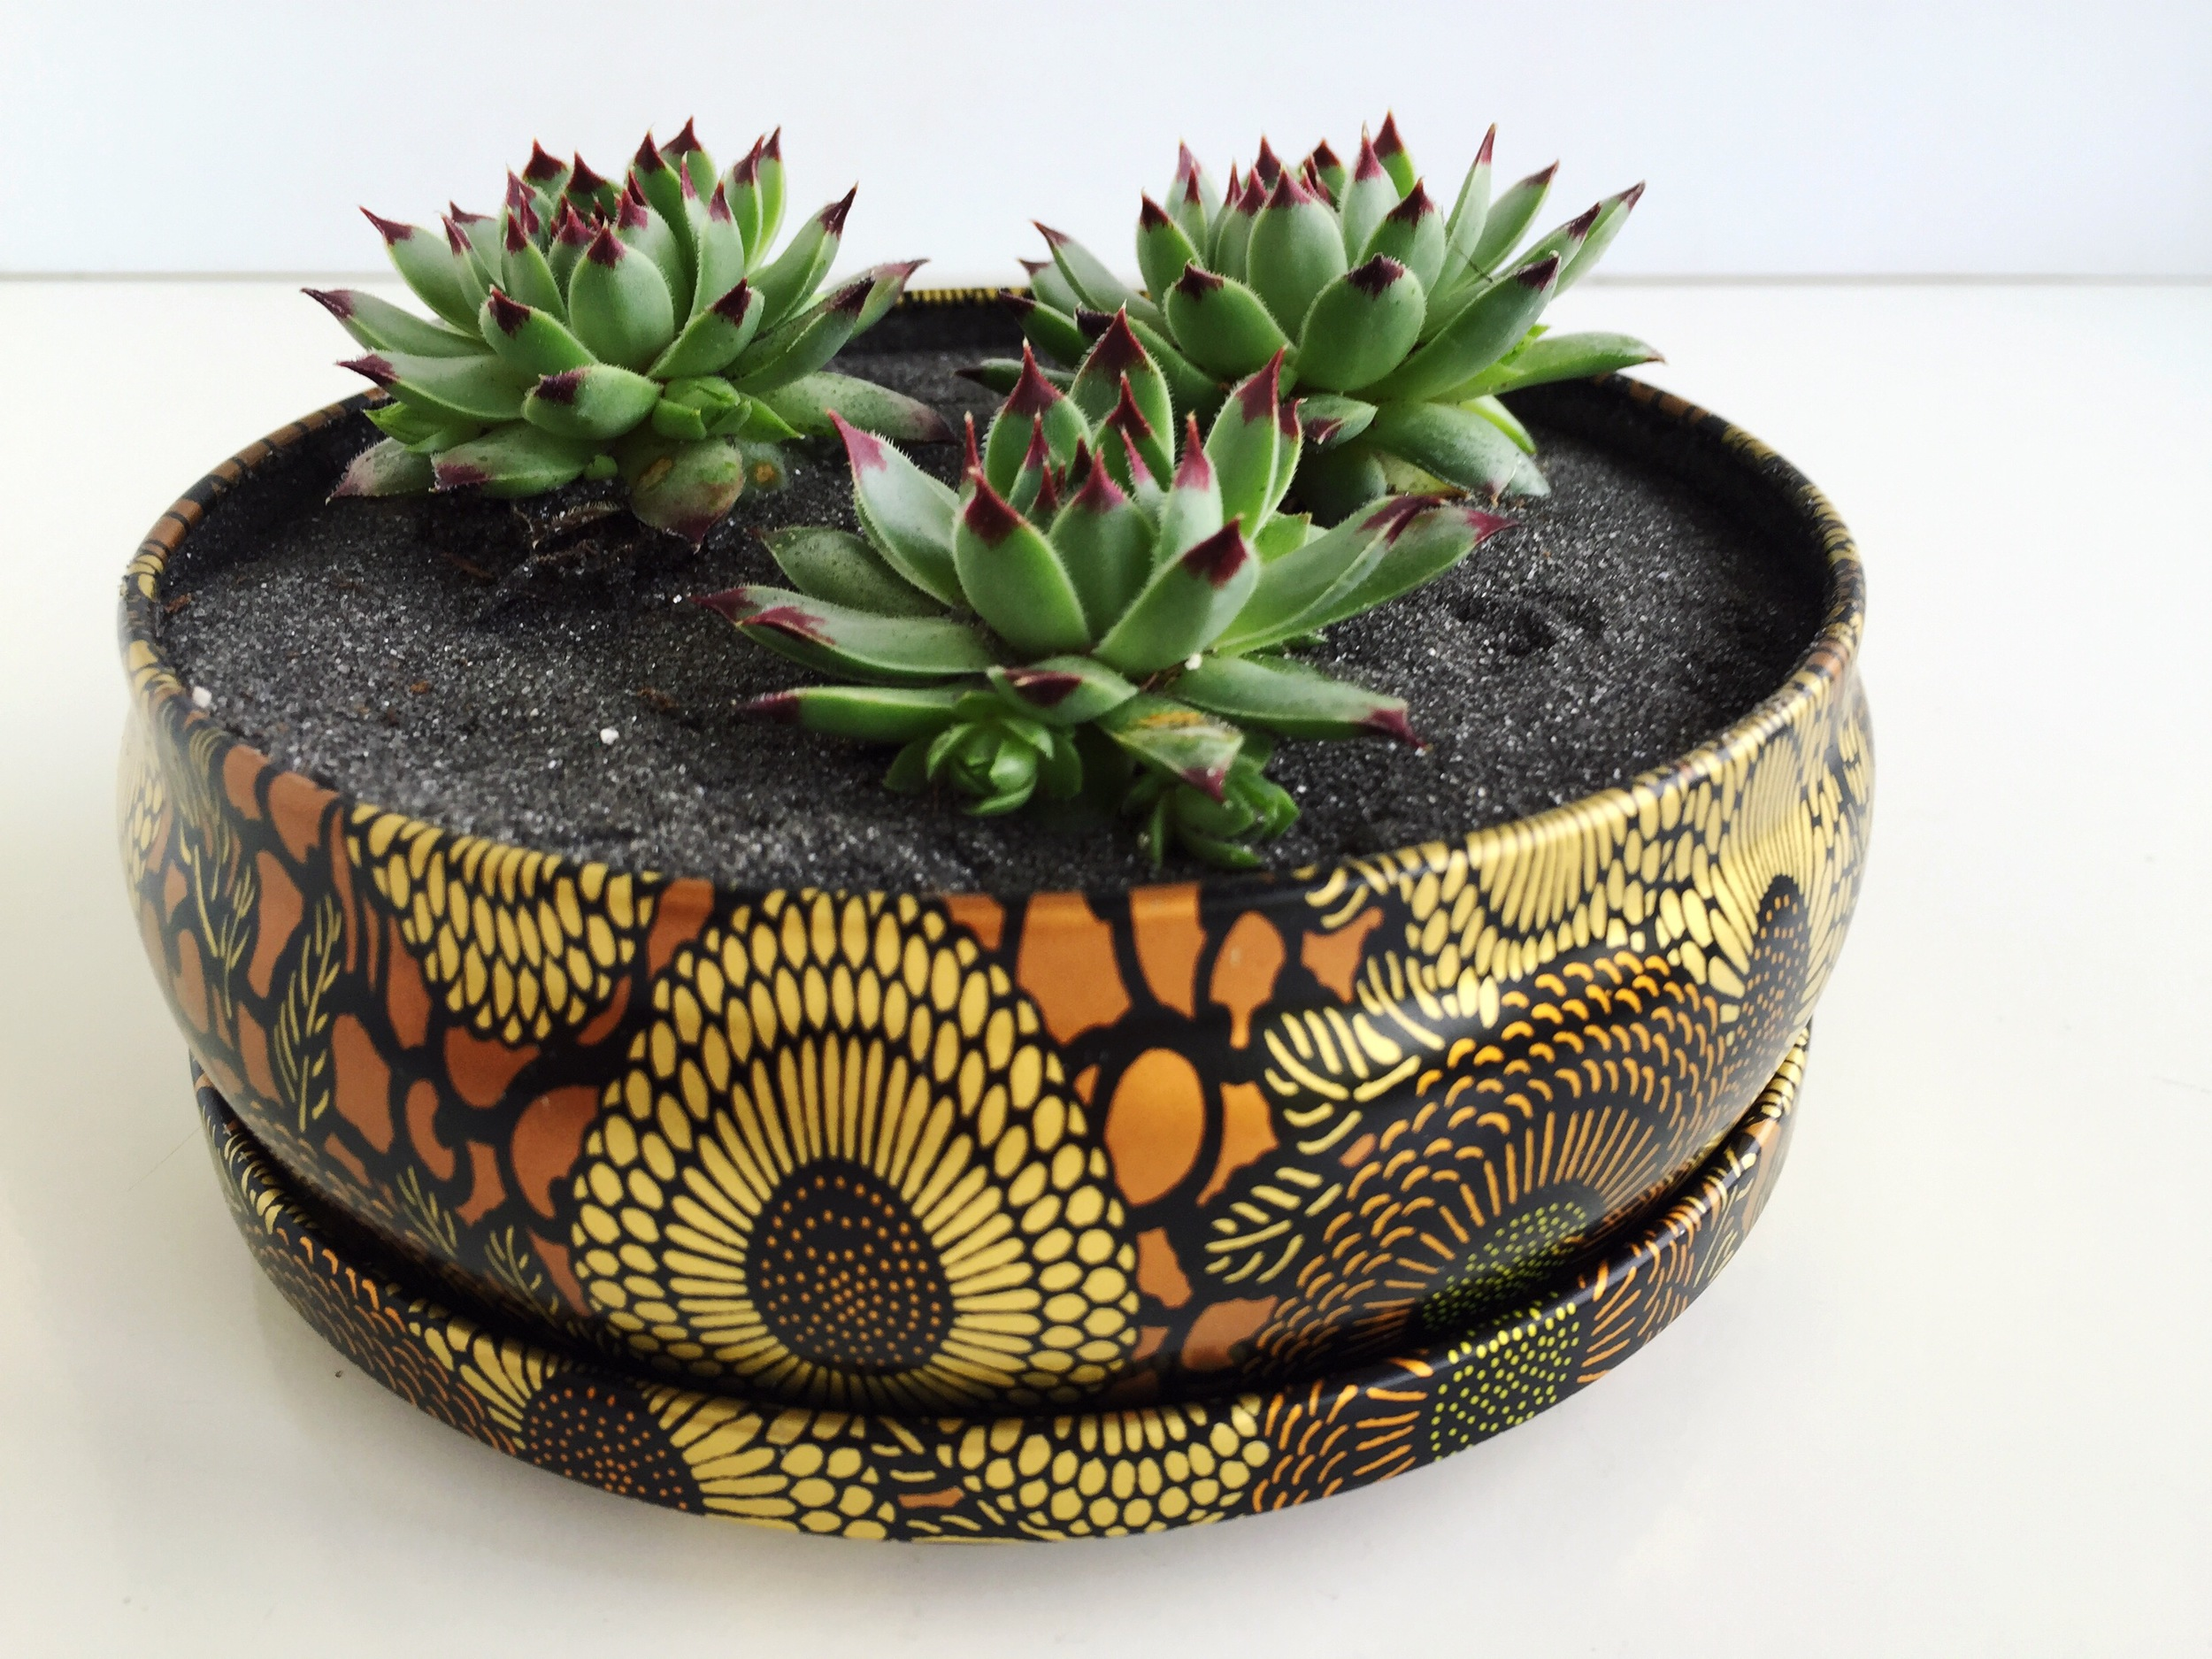 mini succulent garden - upcycled from Anthropologie candle